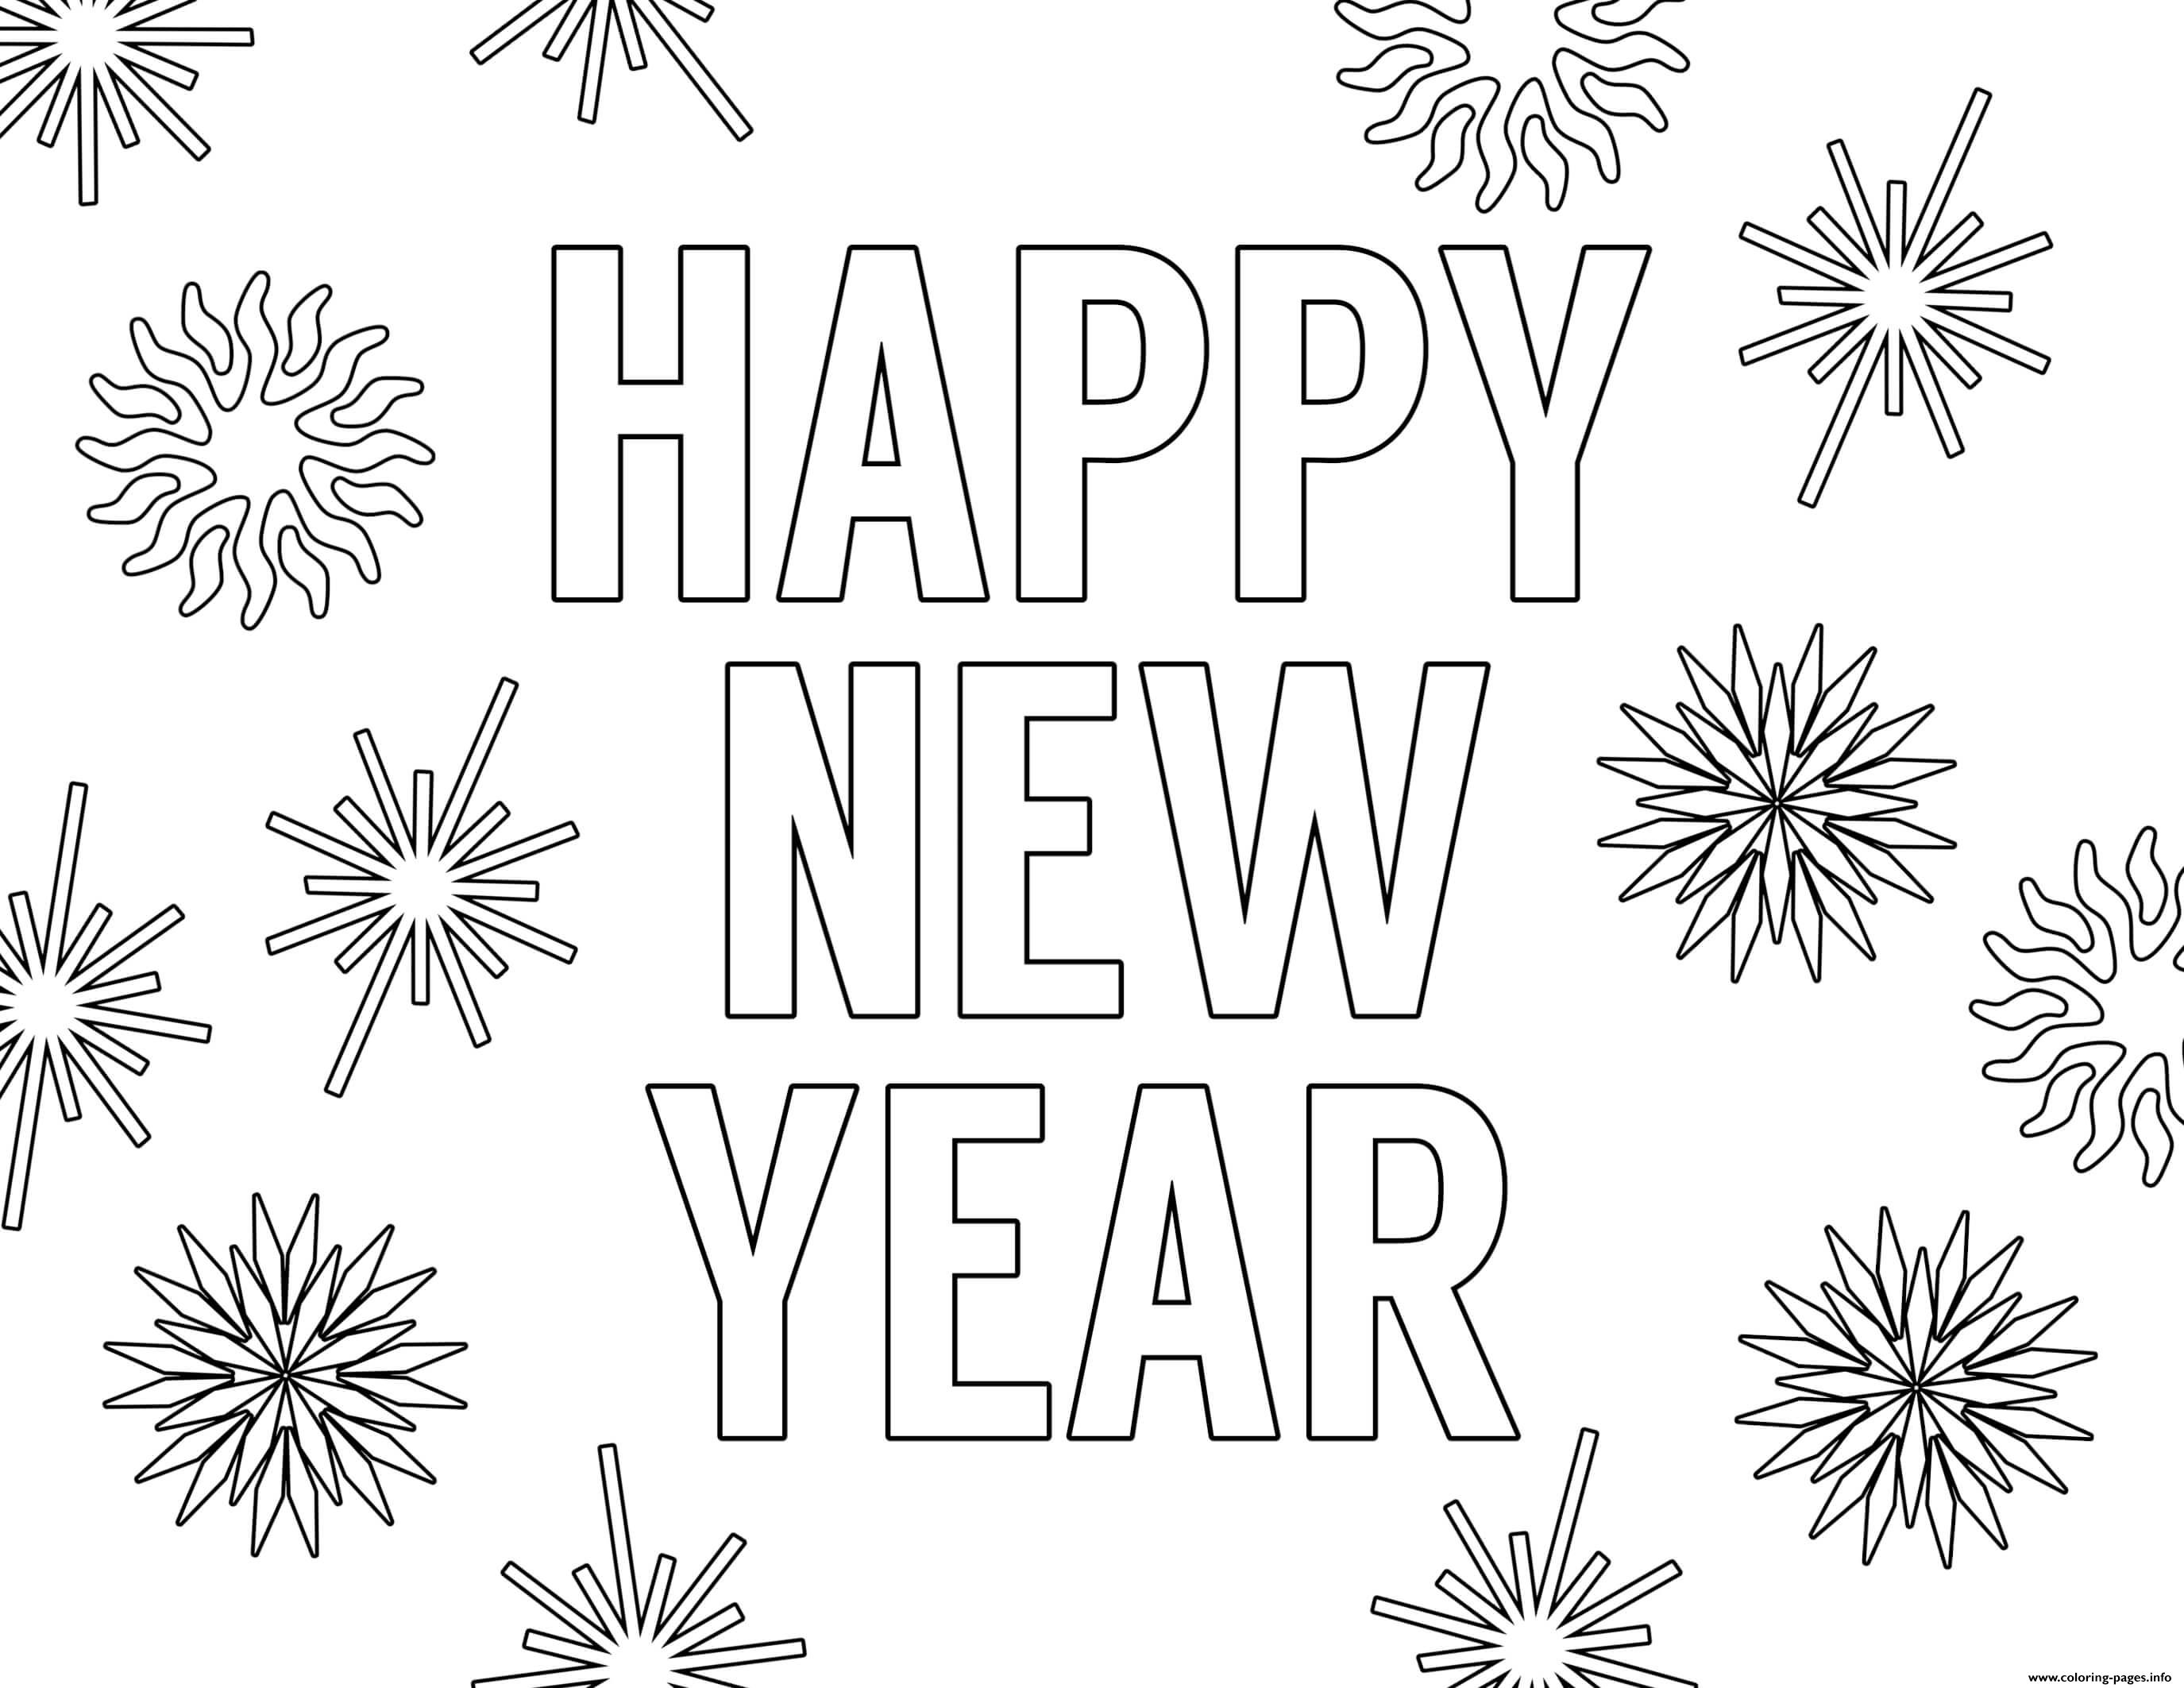 Happy New Year Love And Health Coloring Pages Printable